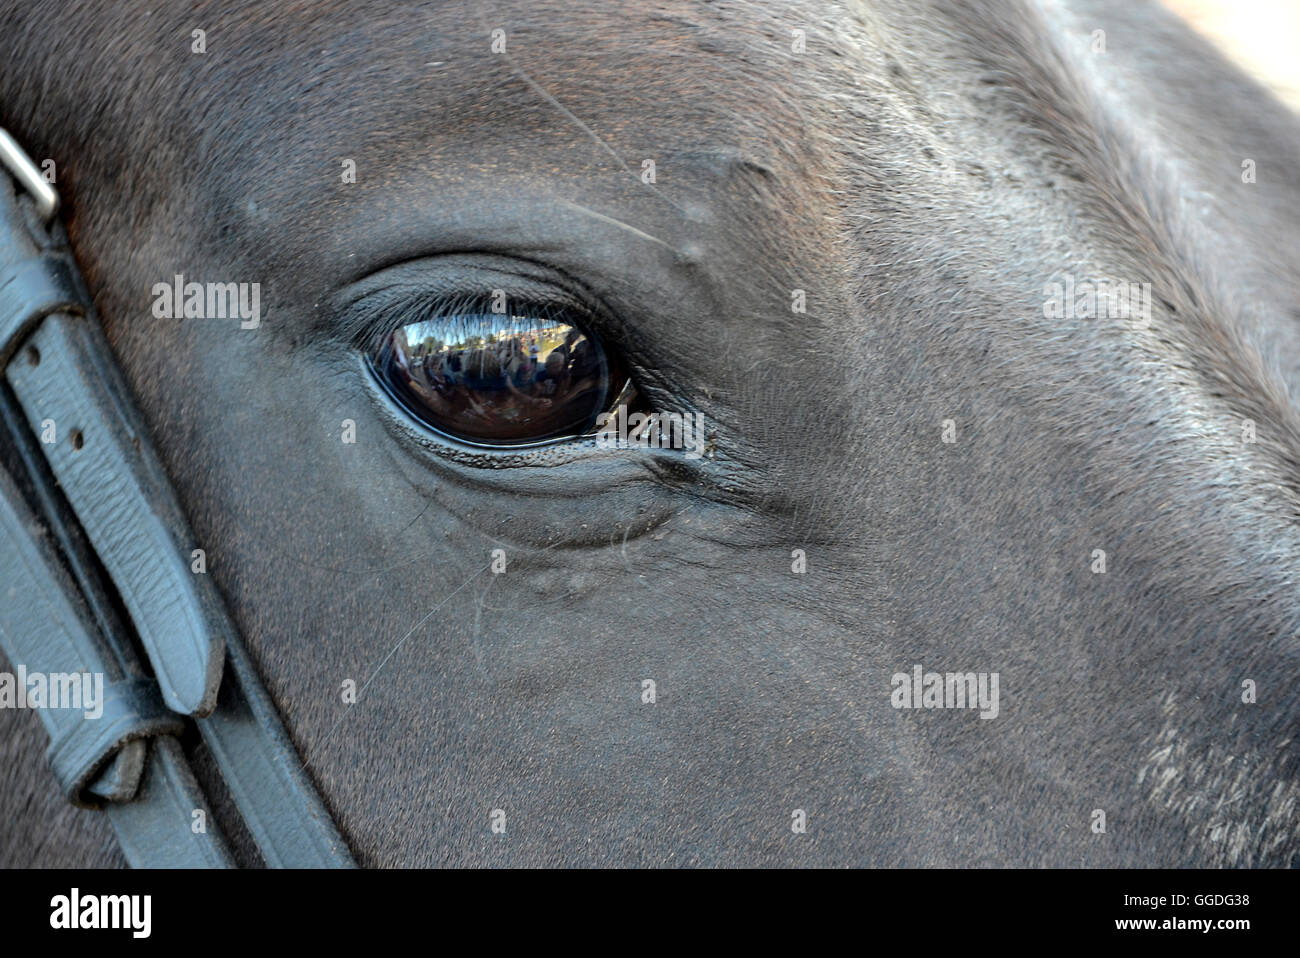 Close in on a horse's eye. - Stock Image